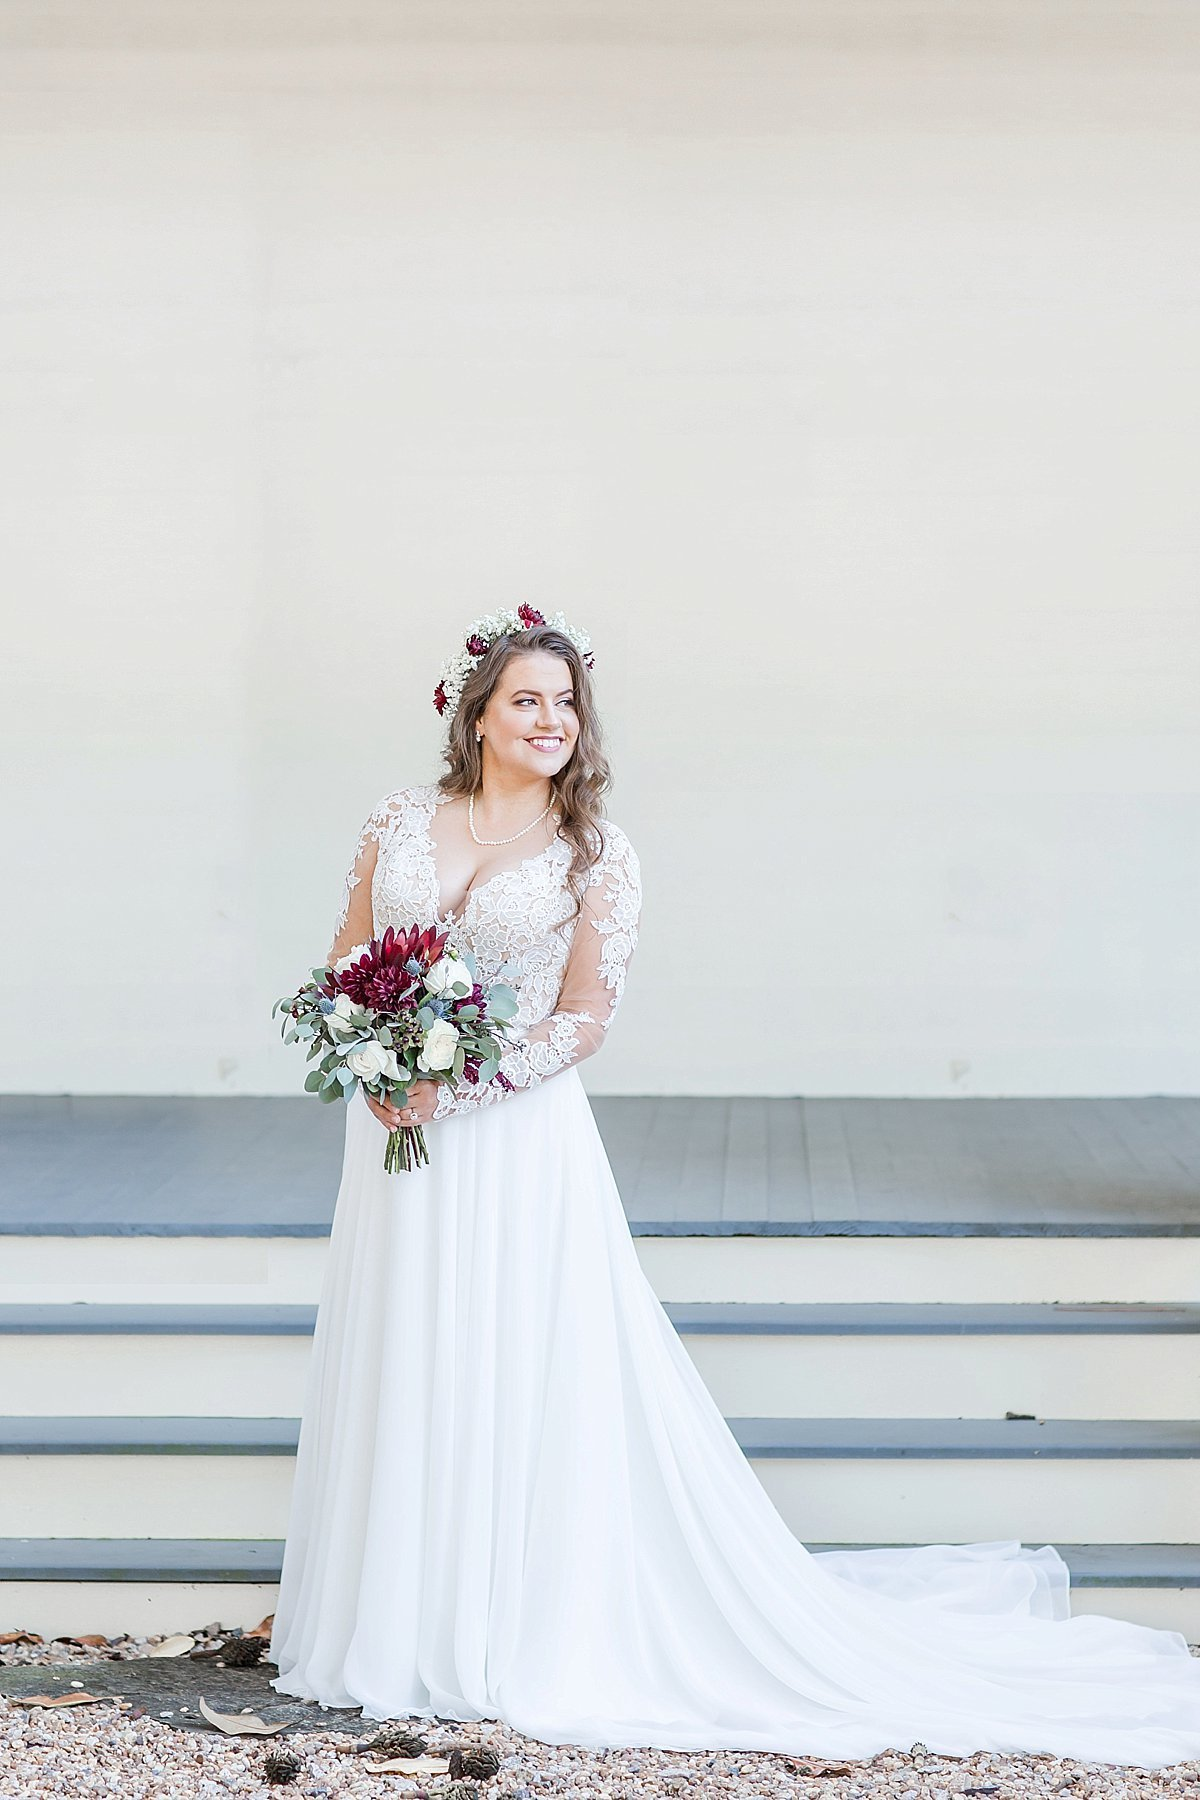 taylorandrewwedding-7559